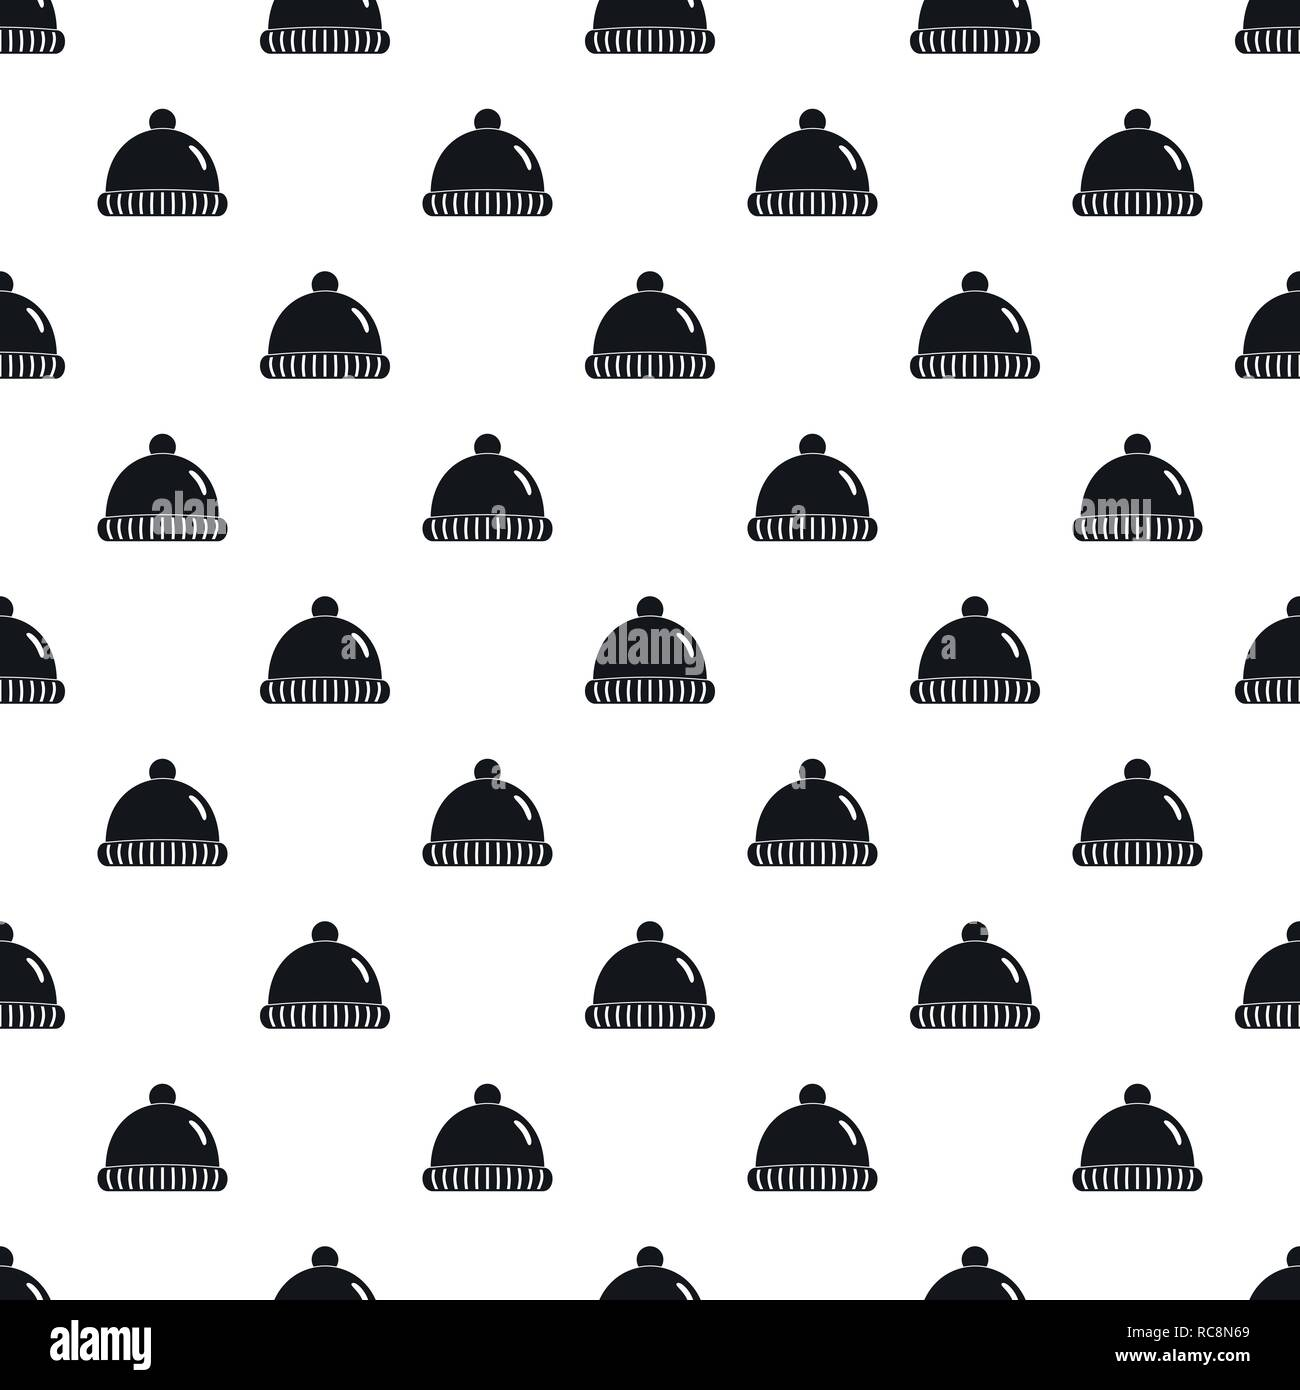 d4f4b8a8a1f Winter hat pattern seamless vector repeat geometric for any web design -  Stock Image